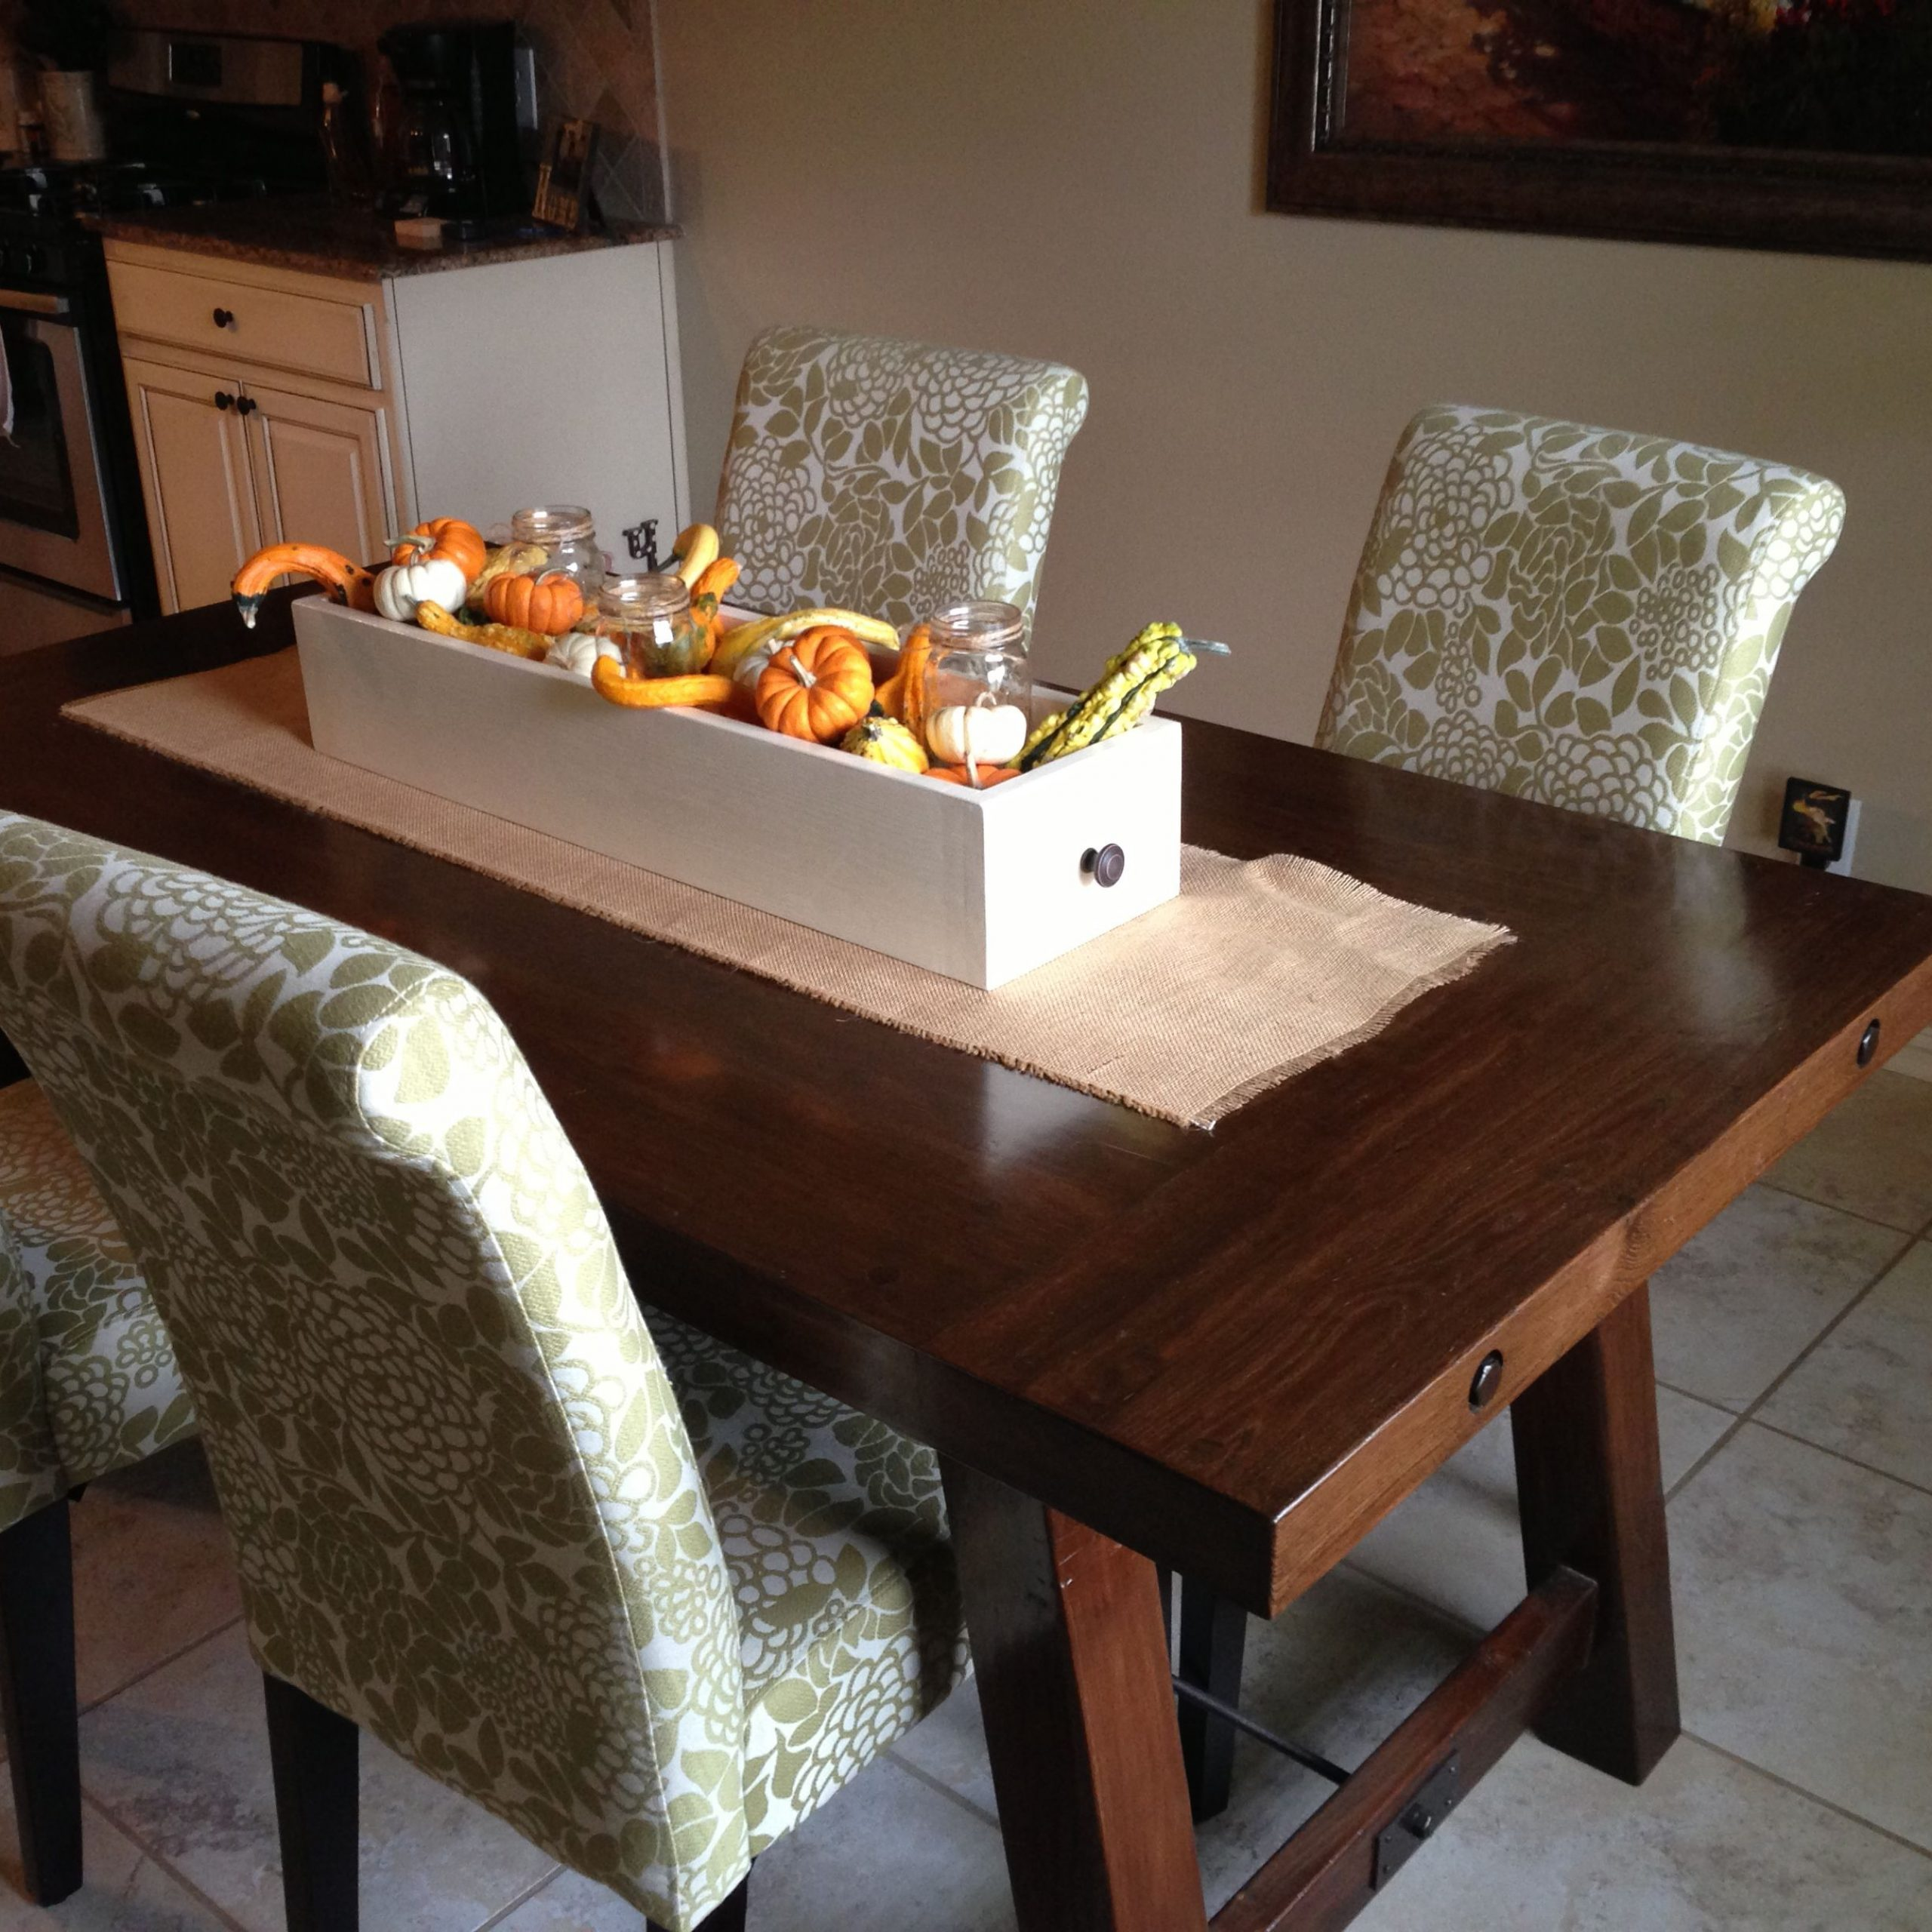 Pottery Barn Benchwright Farmhouse Dining Table   Do It In 2018 Rustic Mahogany Benchwright Pedestal Extending Dining Tables (View 6 of 25)